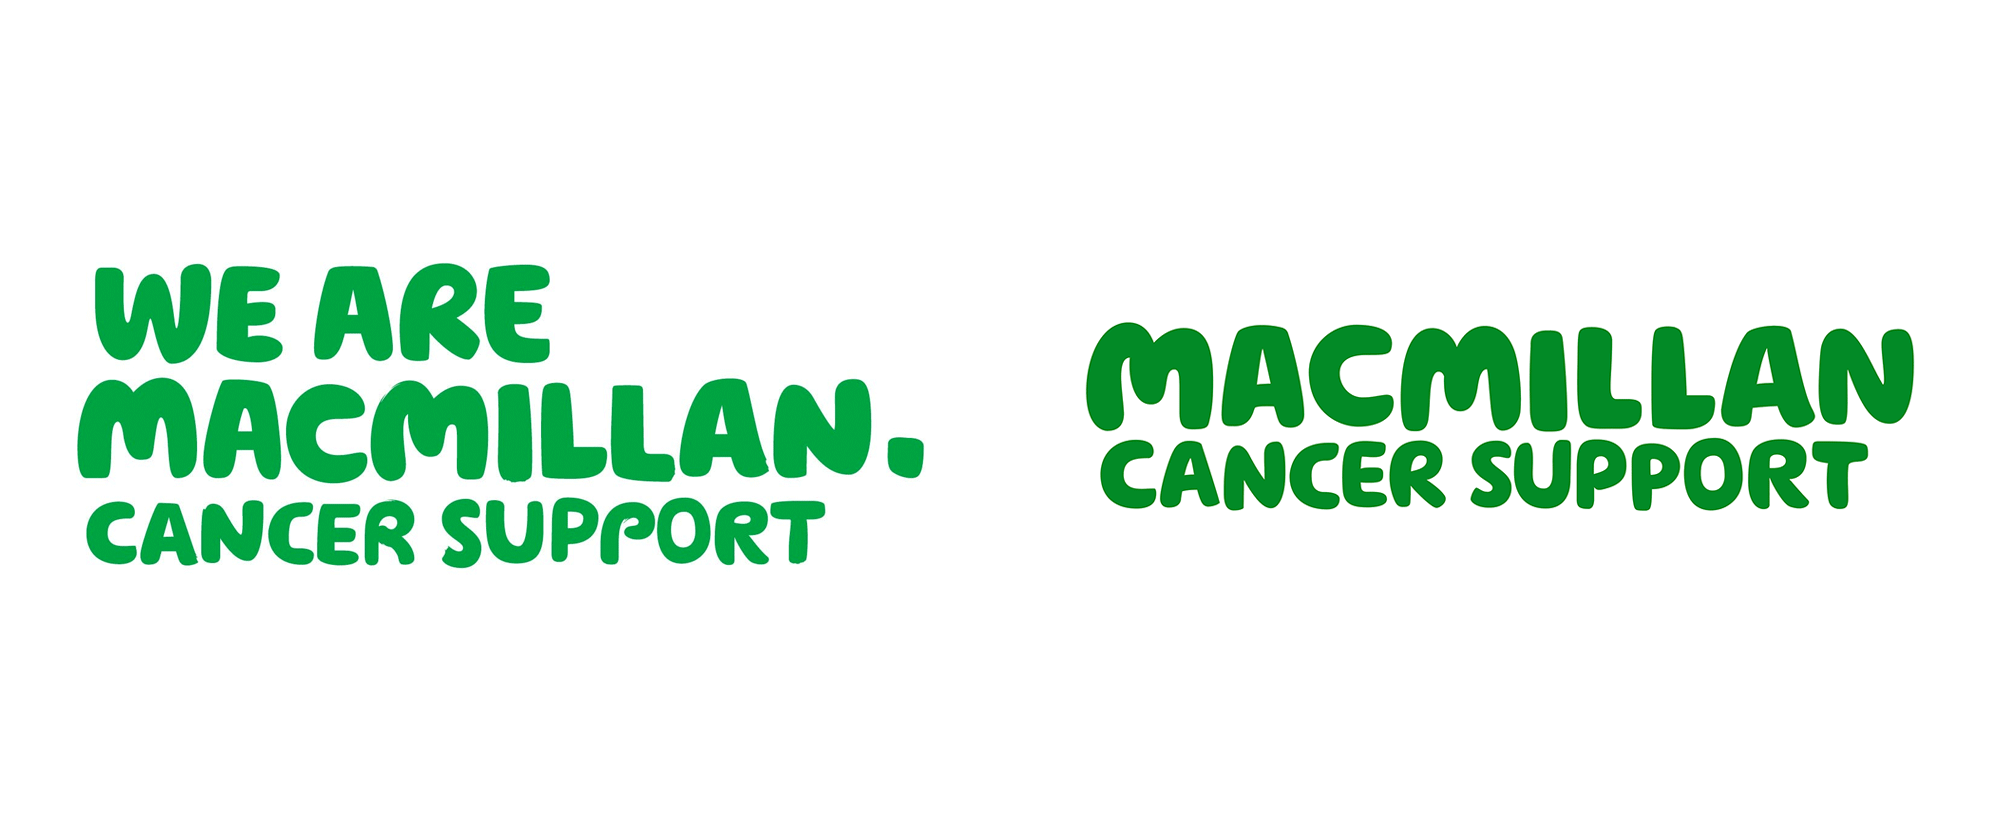 New Logo and Identity for Macmillan Cancer Support by Dragon Rouge